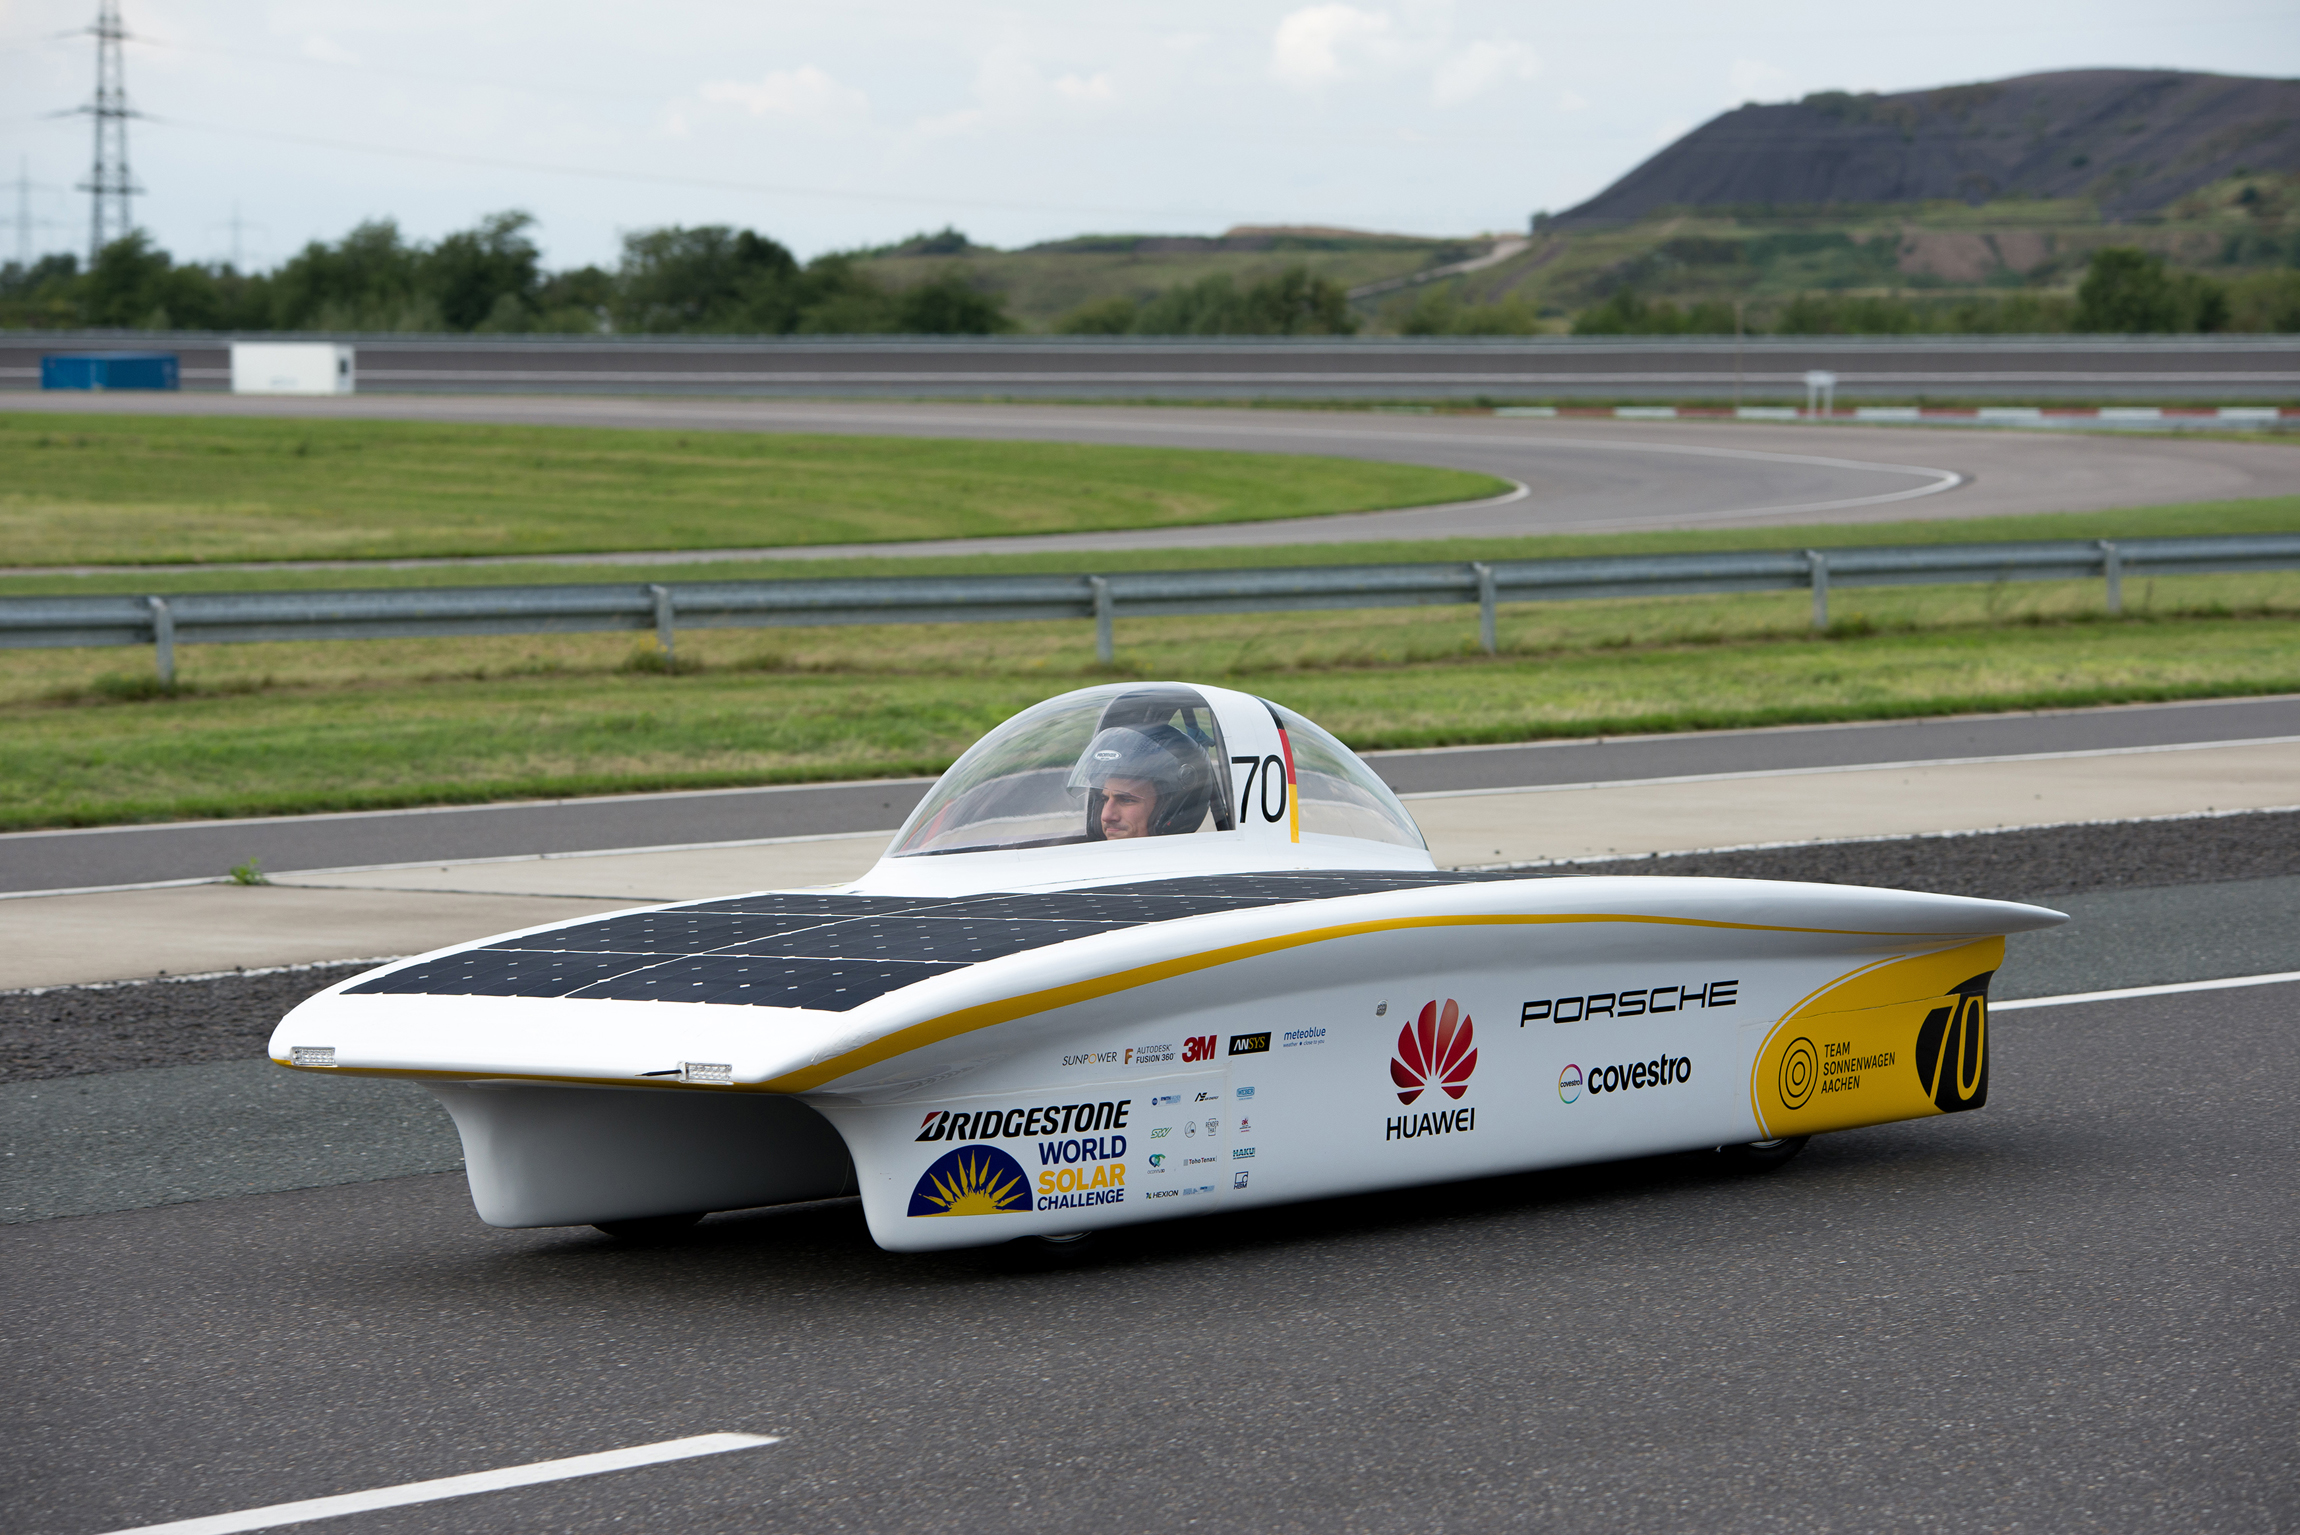 Covestro wants to use the World Solar Challenge in Australia to test coatings under the harsh climate conditions prevailing along the race´s route (Source: Covestro / Matthias König)